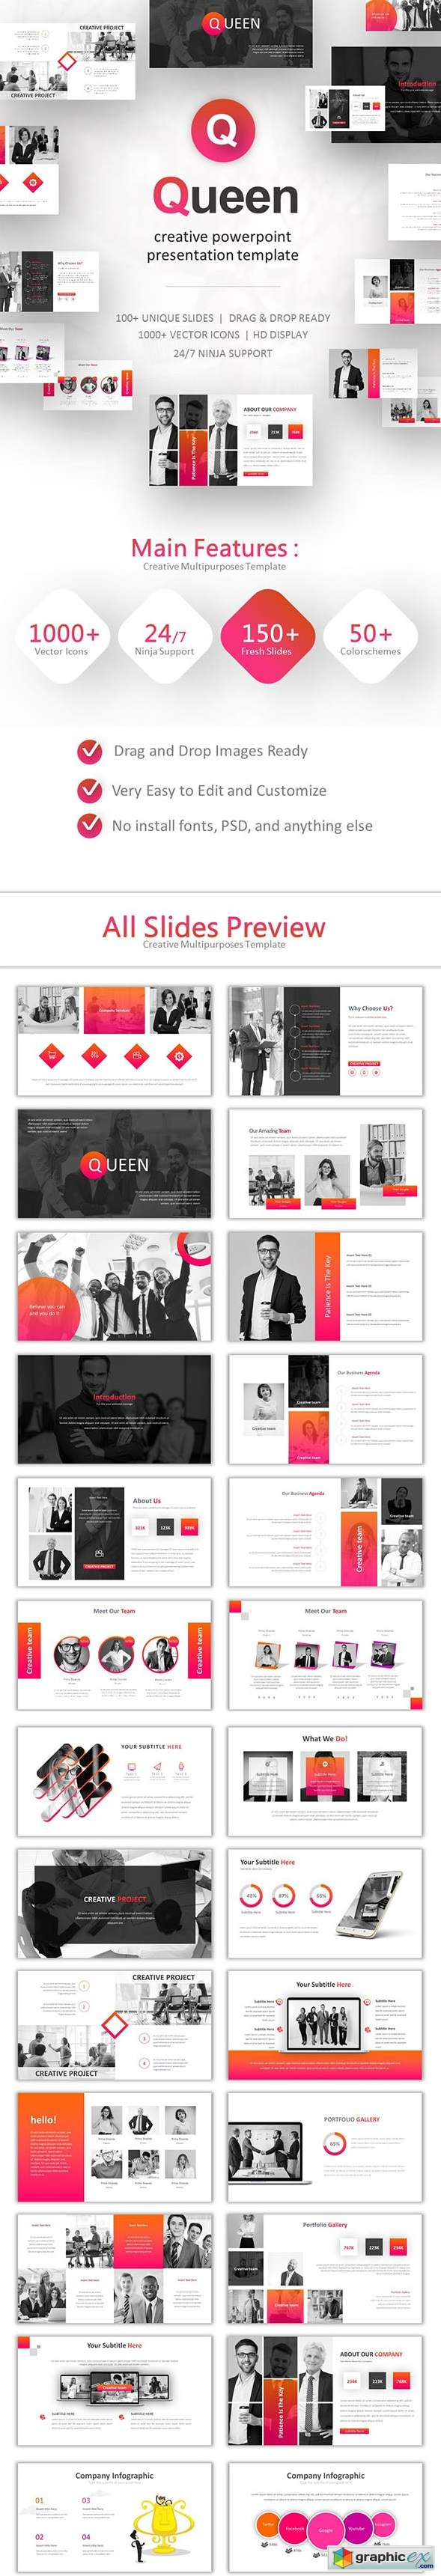 Queen Powerpoint